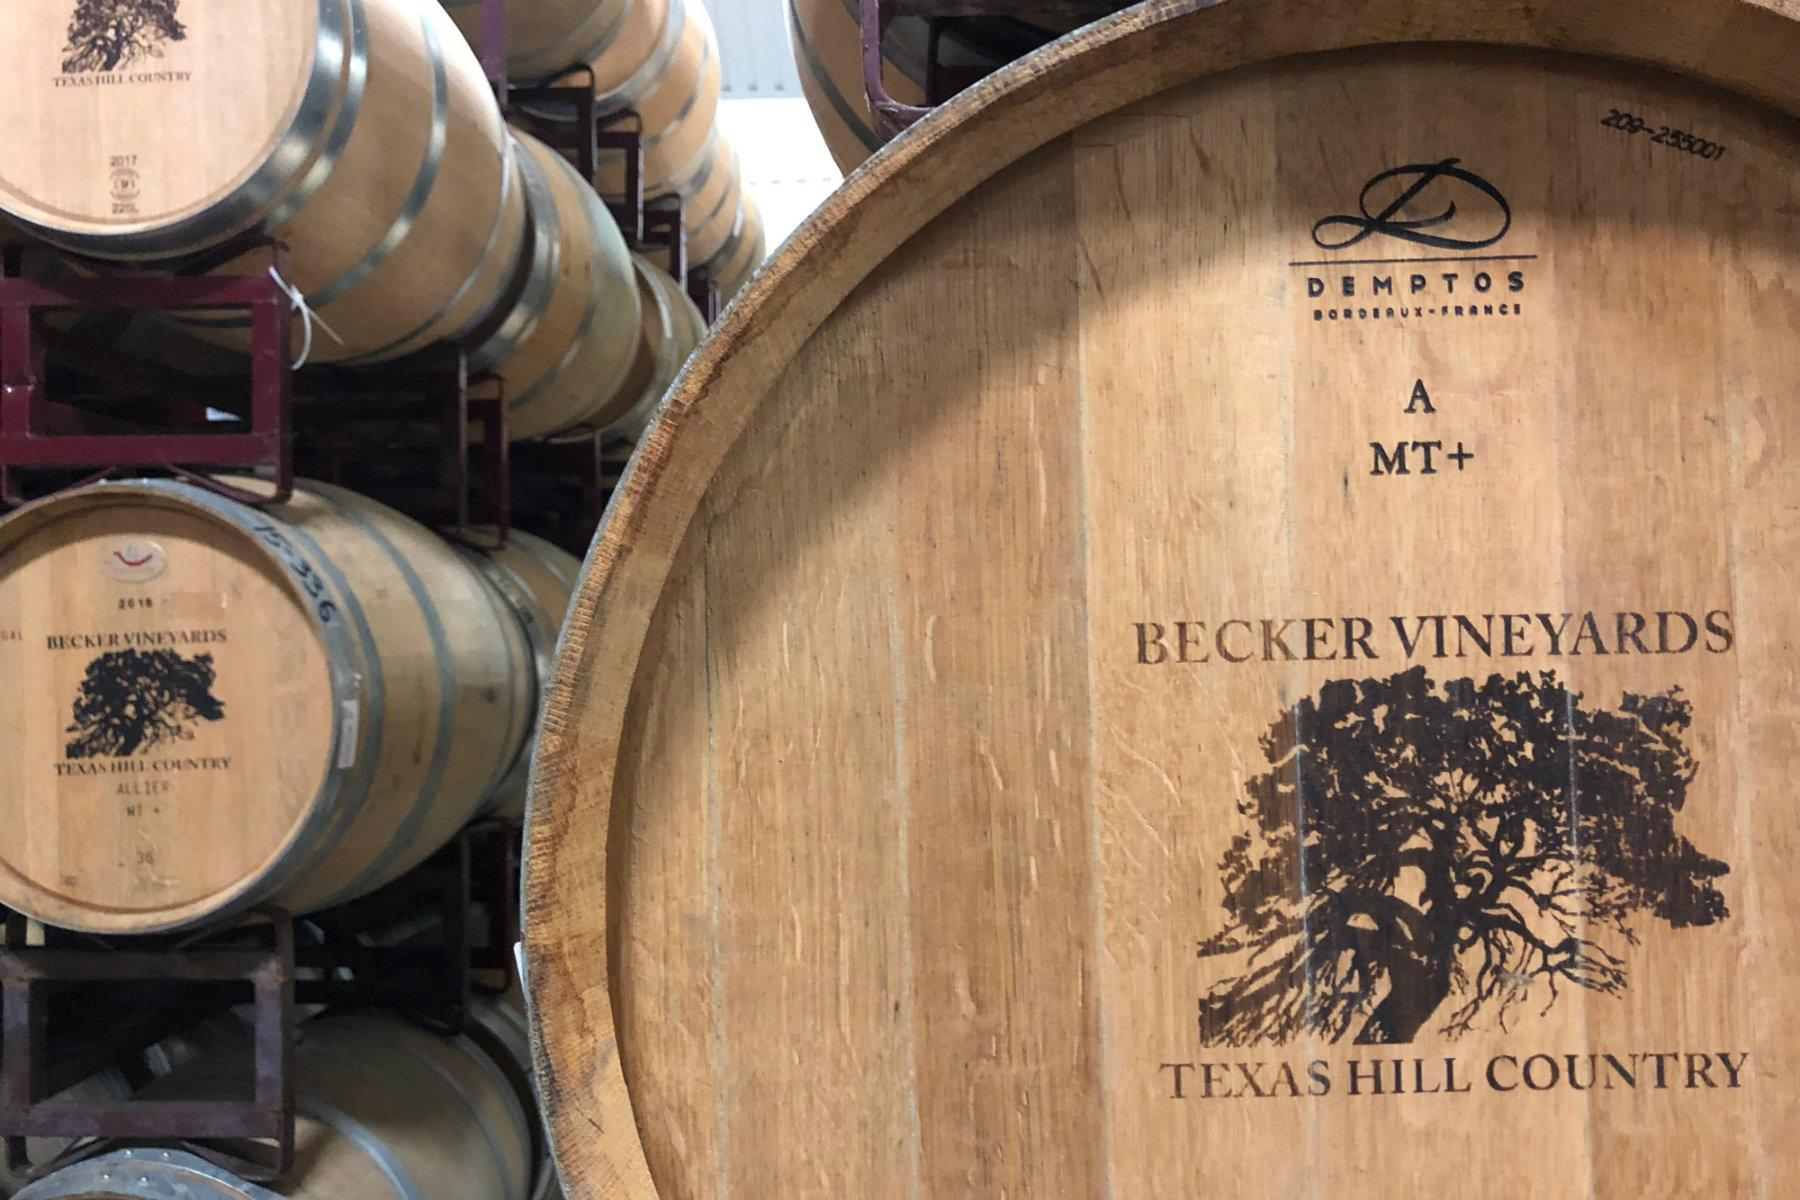 Becker vineyards _ KB